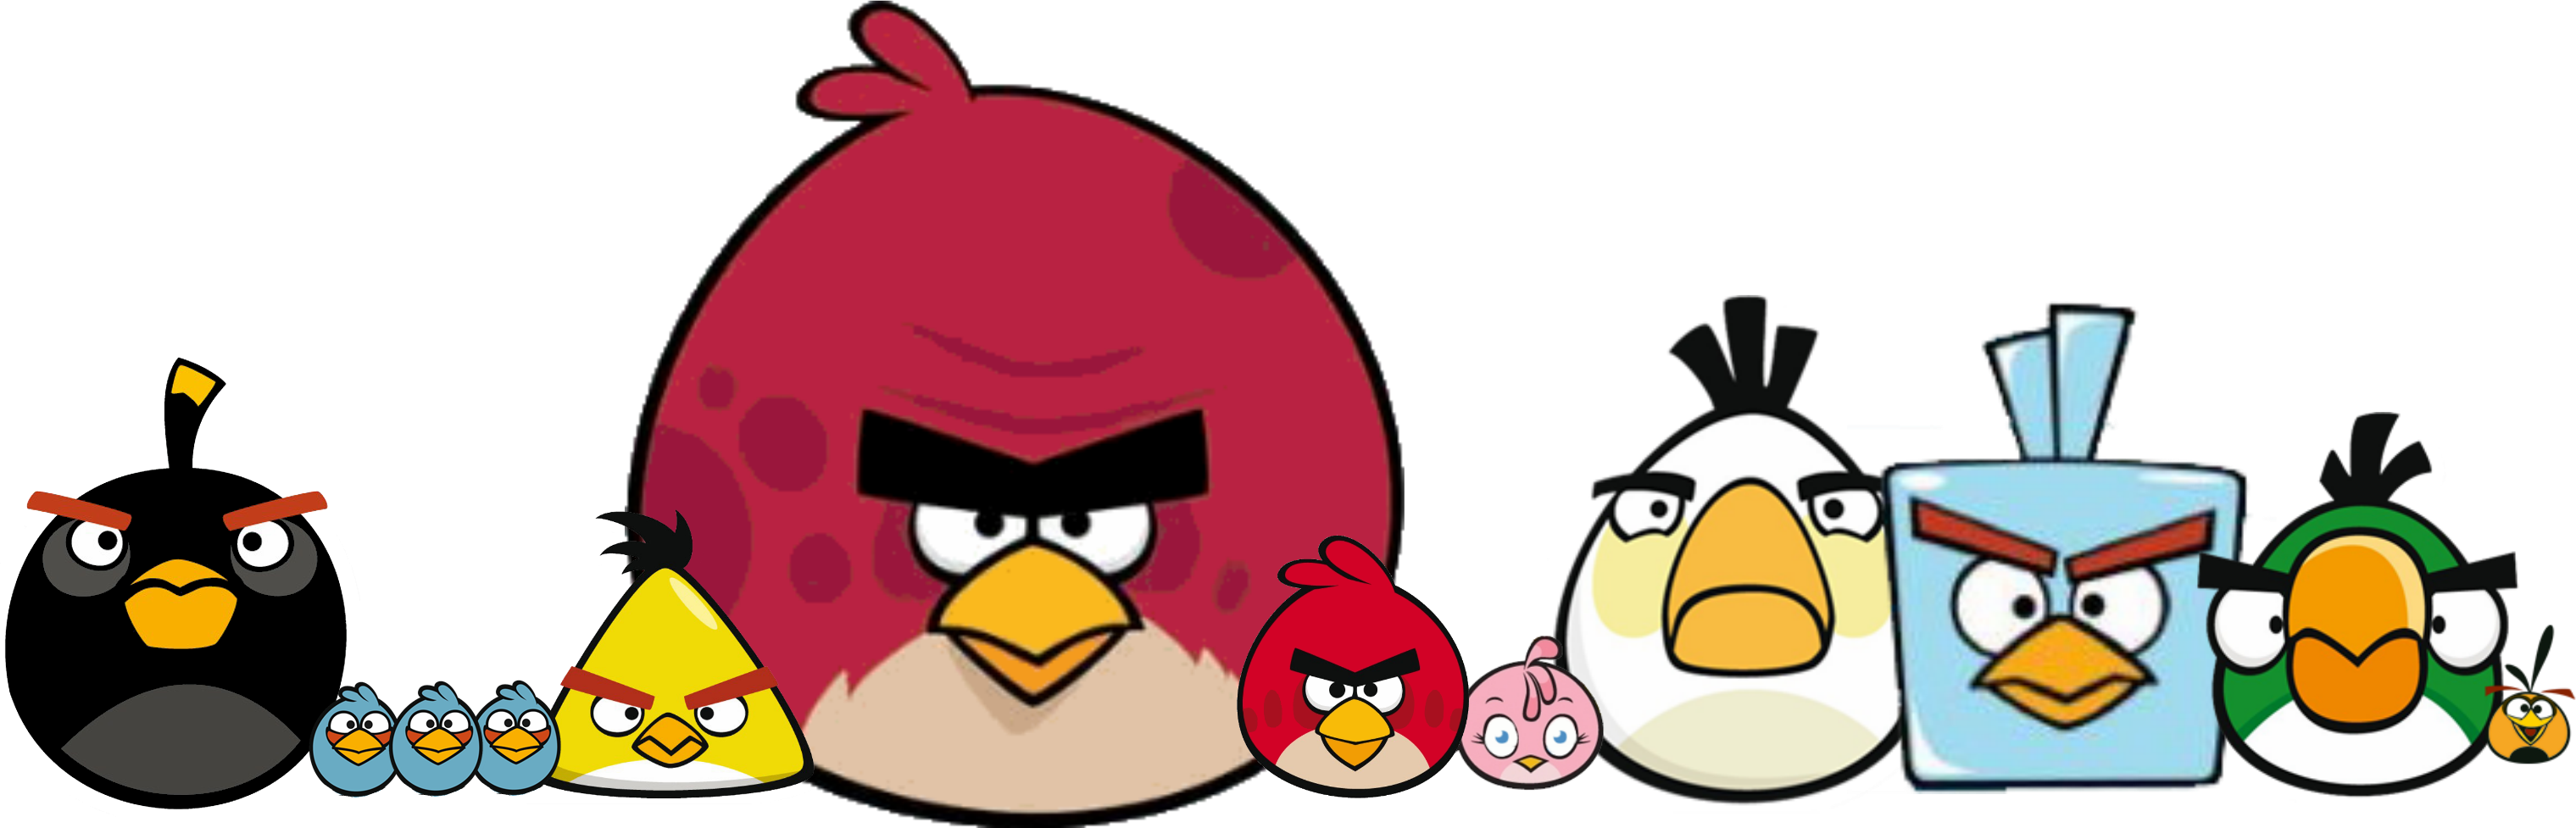 Cousins clipart olympic. Angry birds frollo s